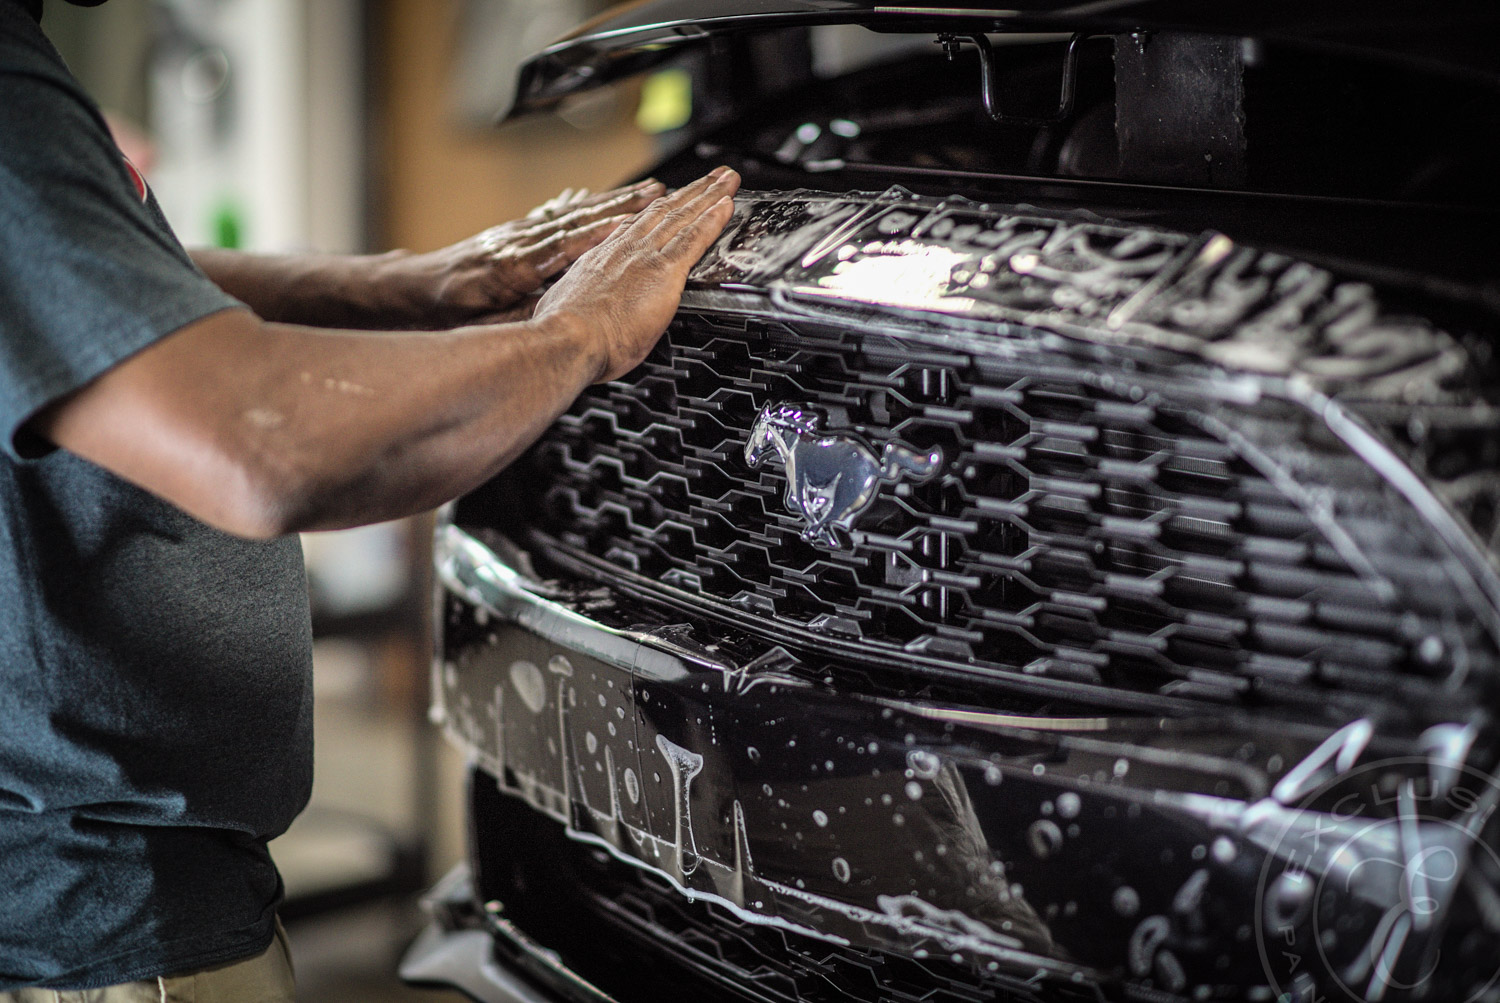 - Urethane, the central ingredient in Paint Protection Film, is lightweight, transparent, flexible, and highly resistant to impact, abrasion, and corrosion.